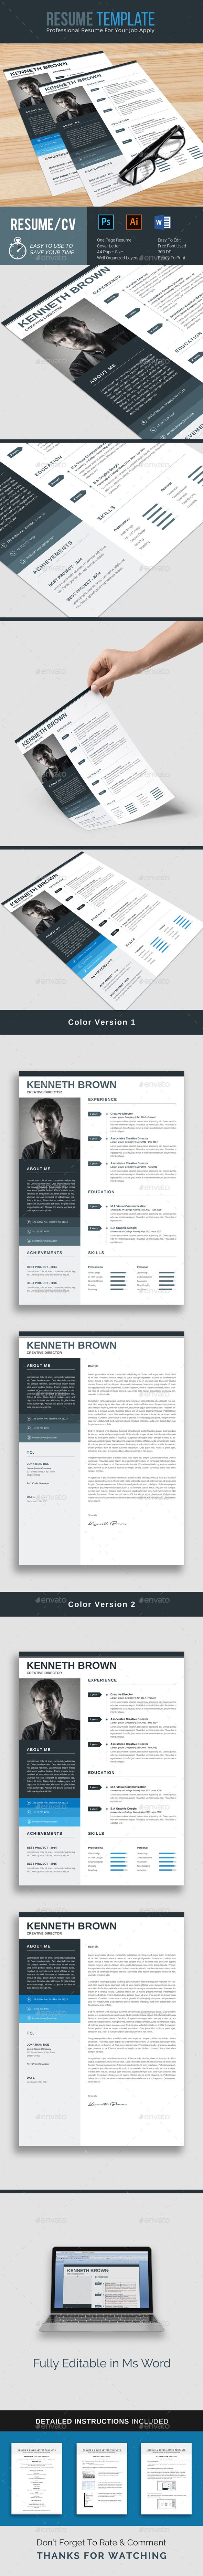 Functional Resume Template Microsoft%0A Resume   CV